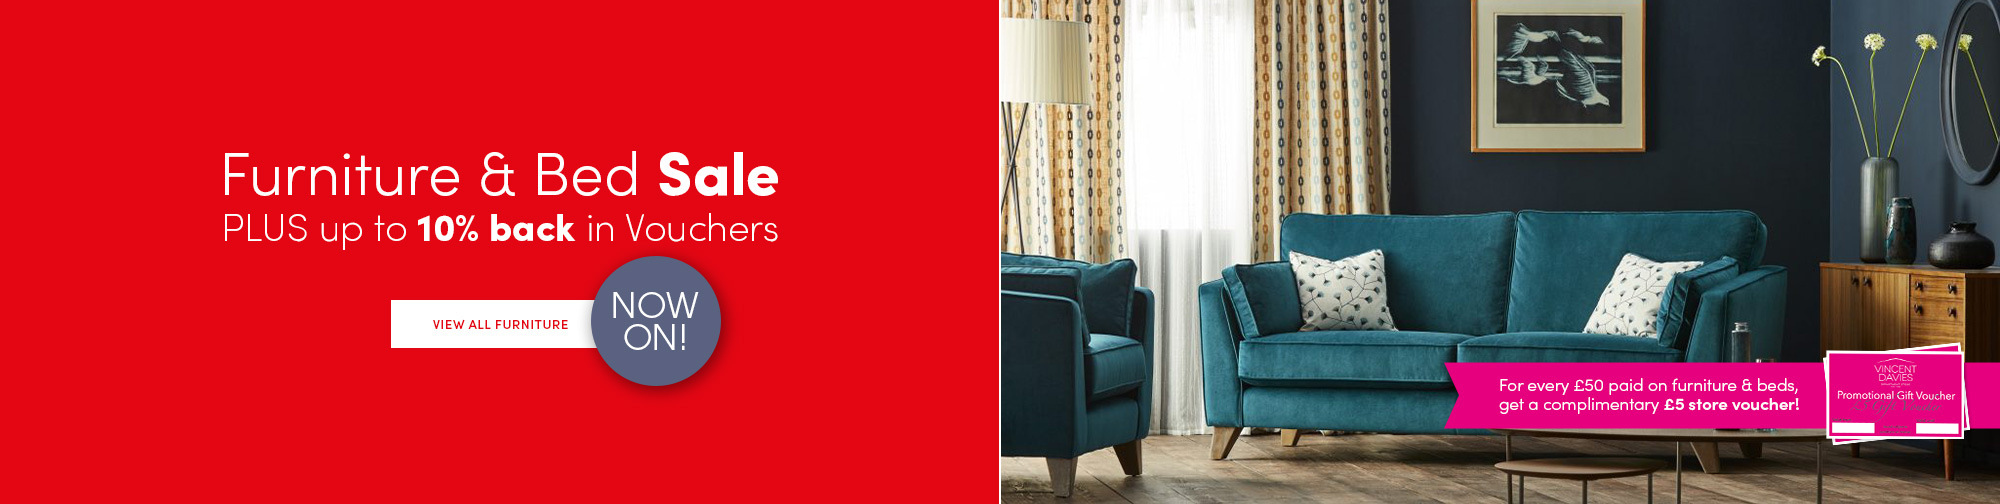 Furniture & Bed Sale with Voucher Promo